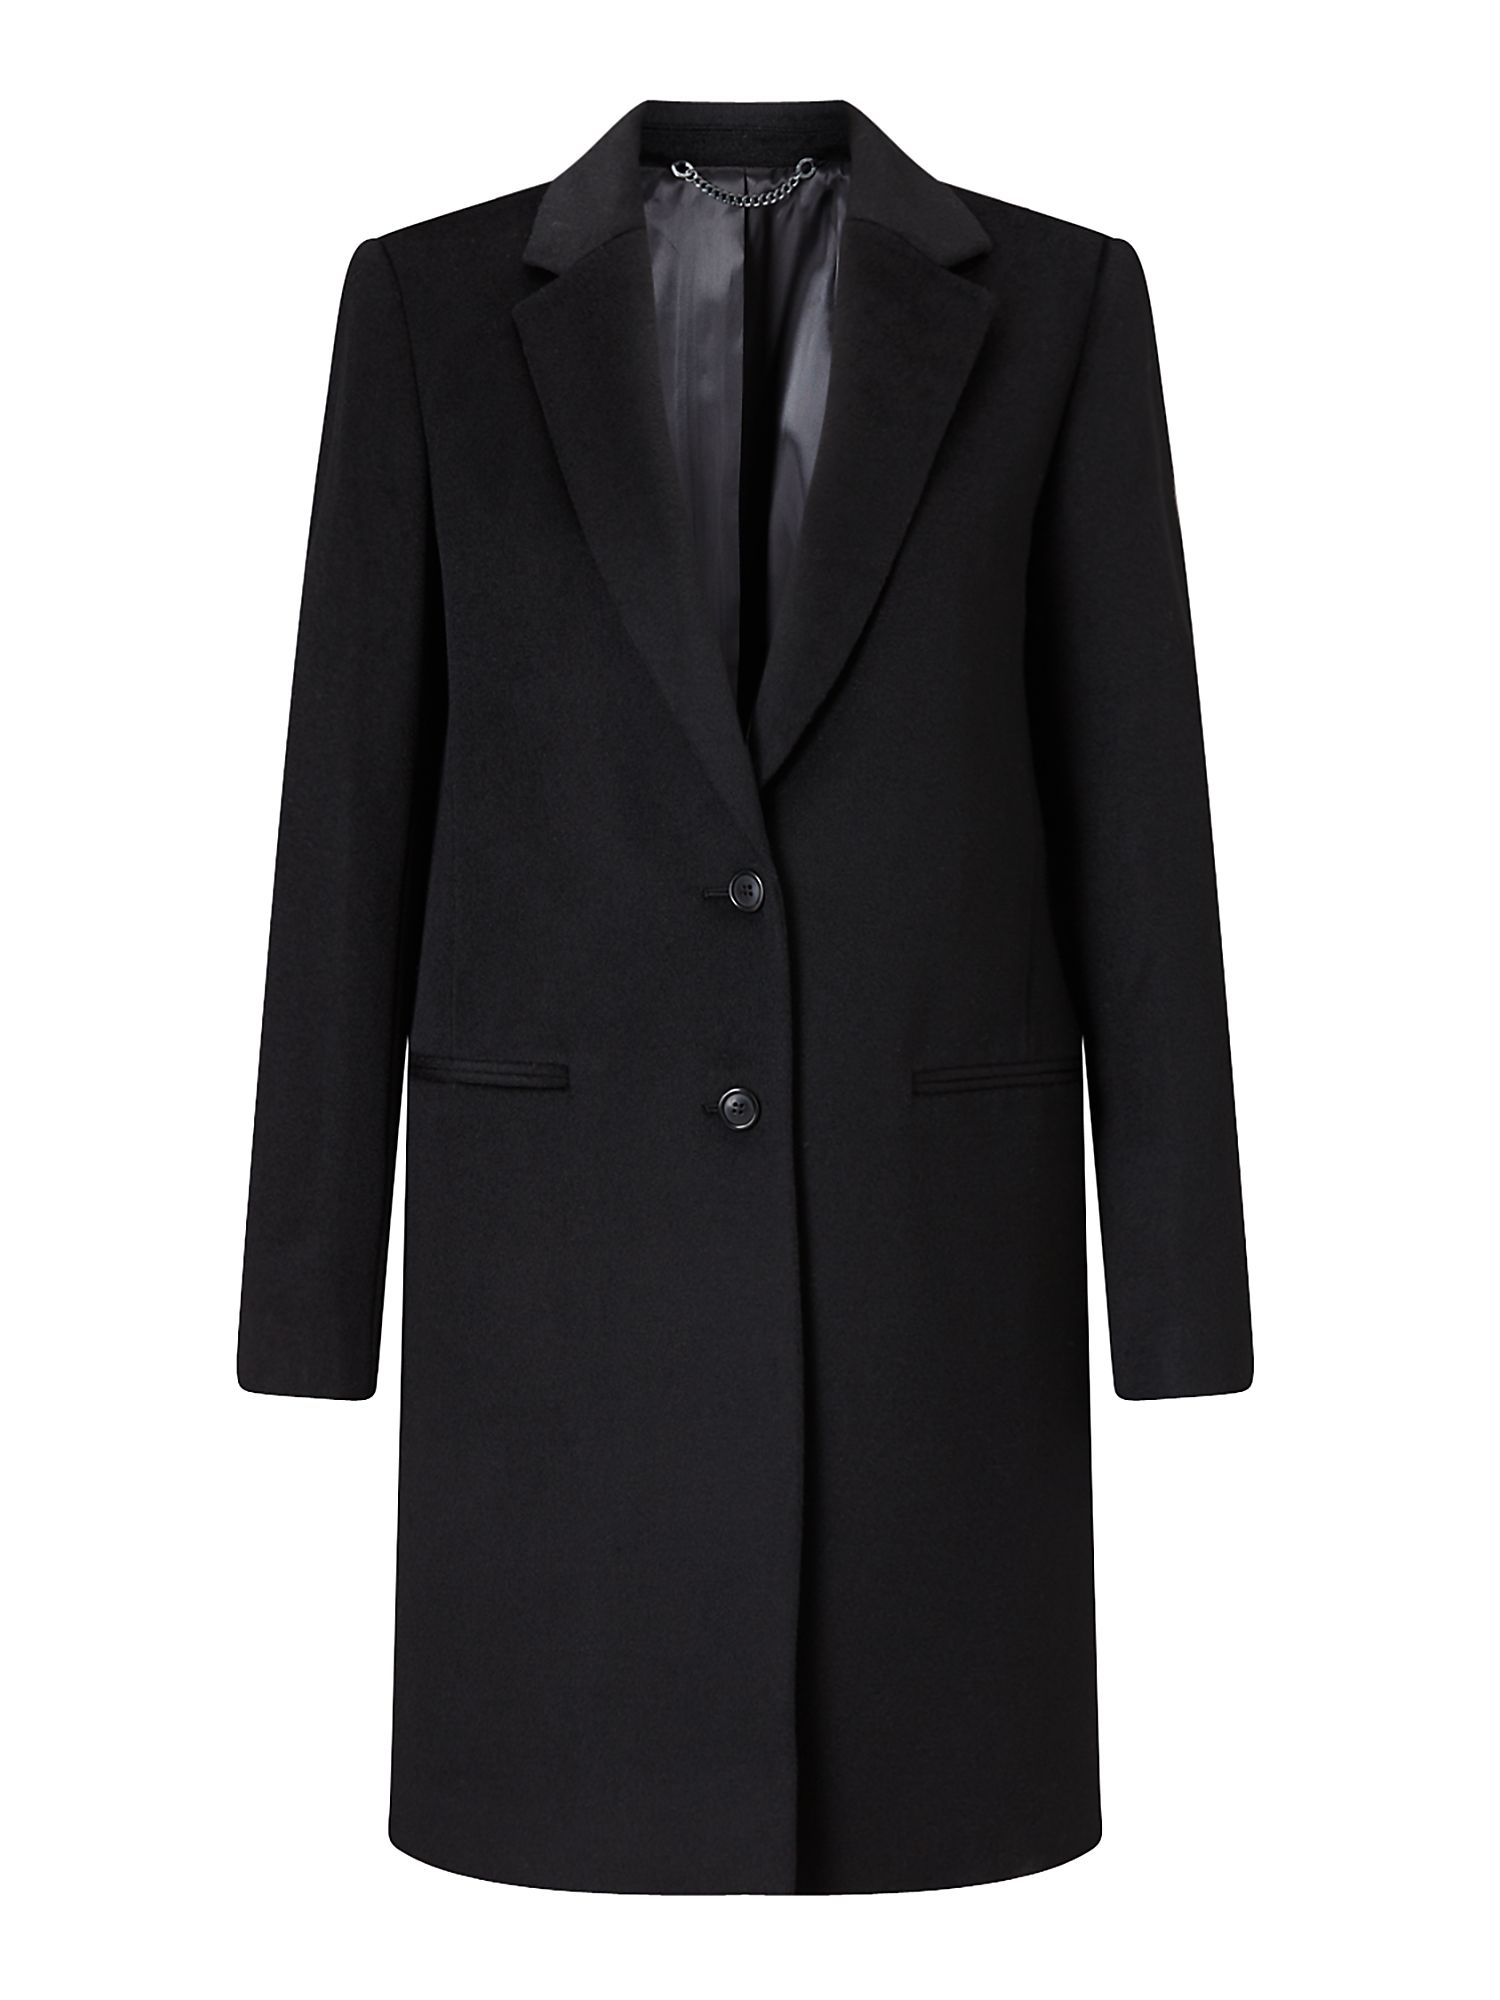 Jigsaw Sb City Wool Coat, Black